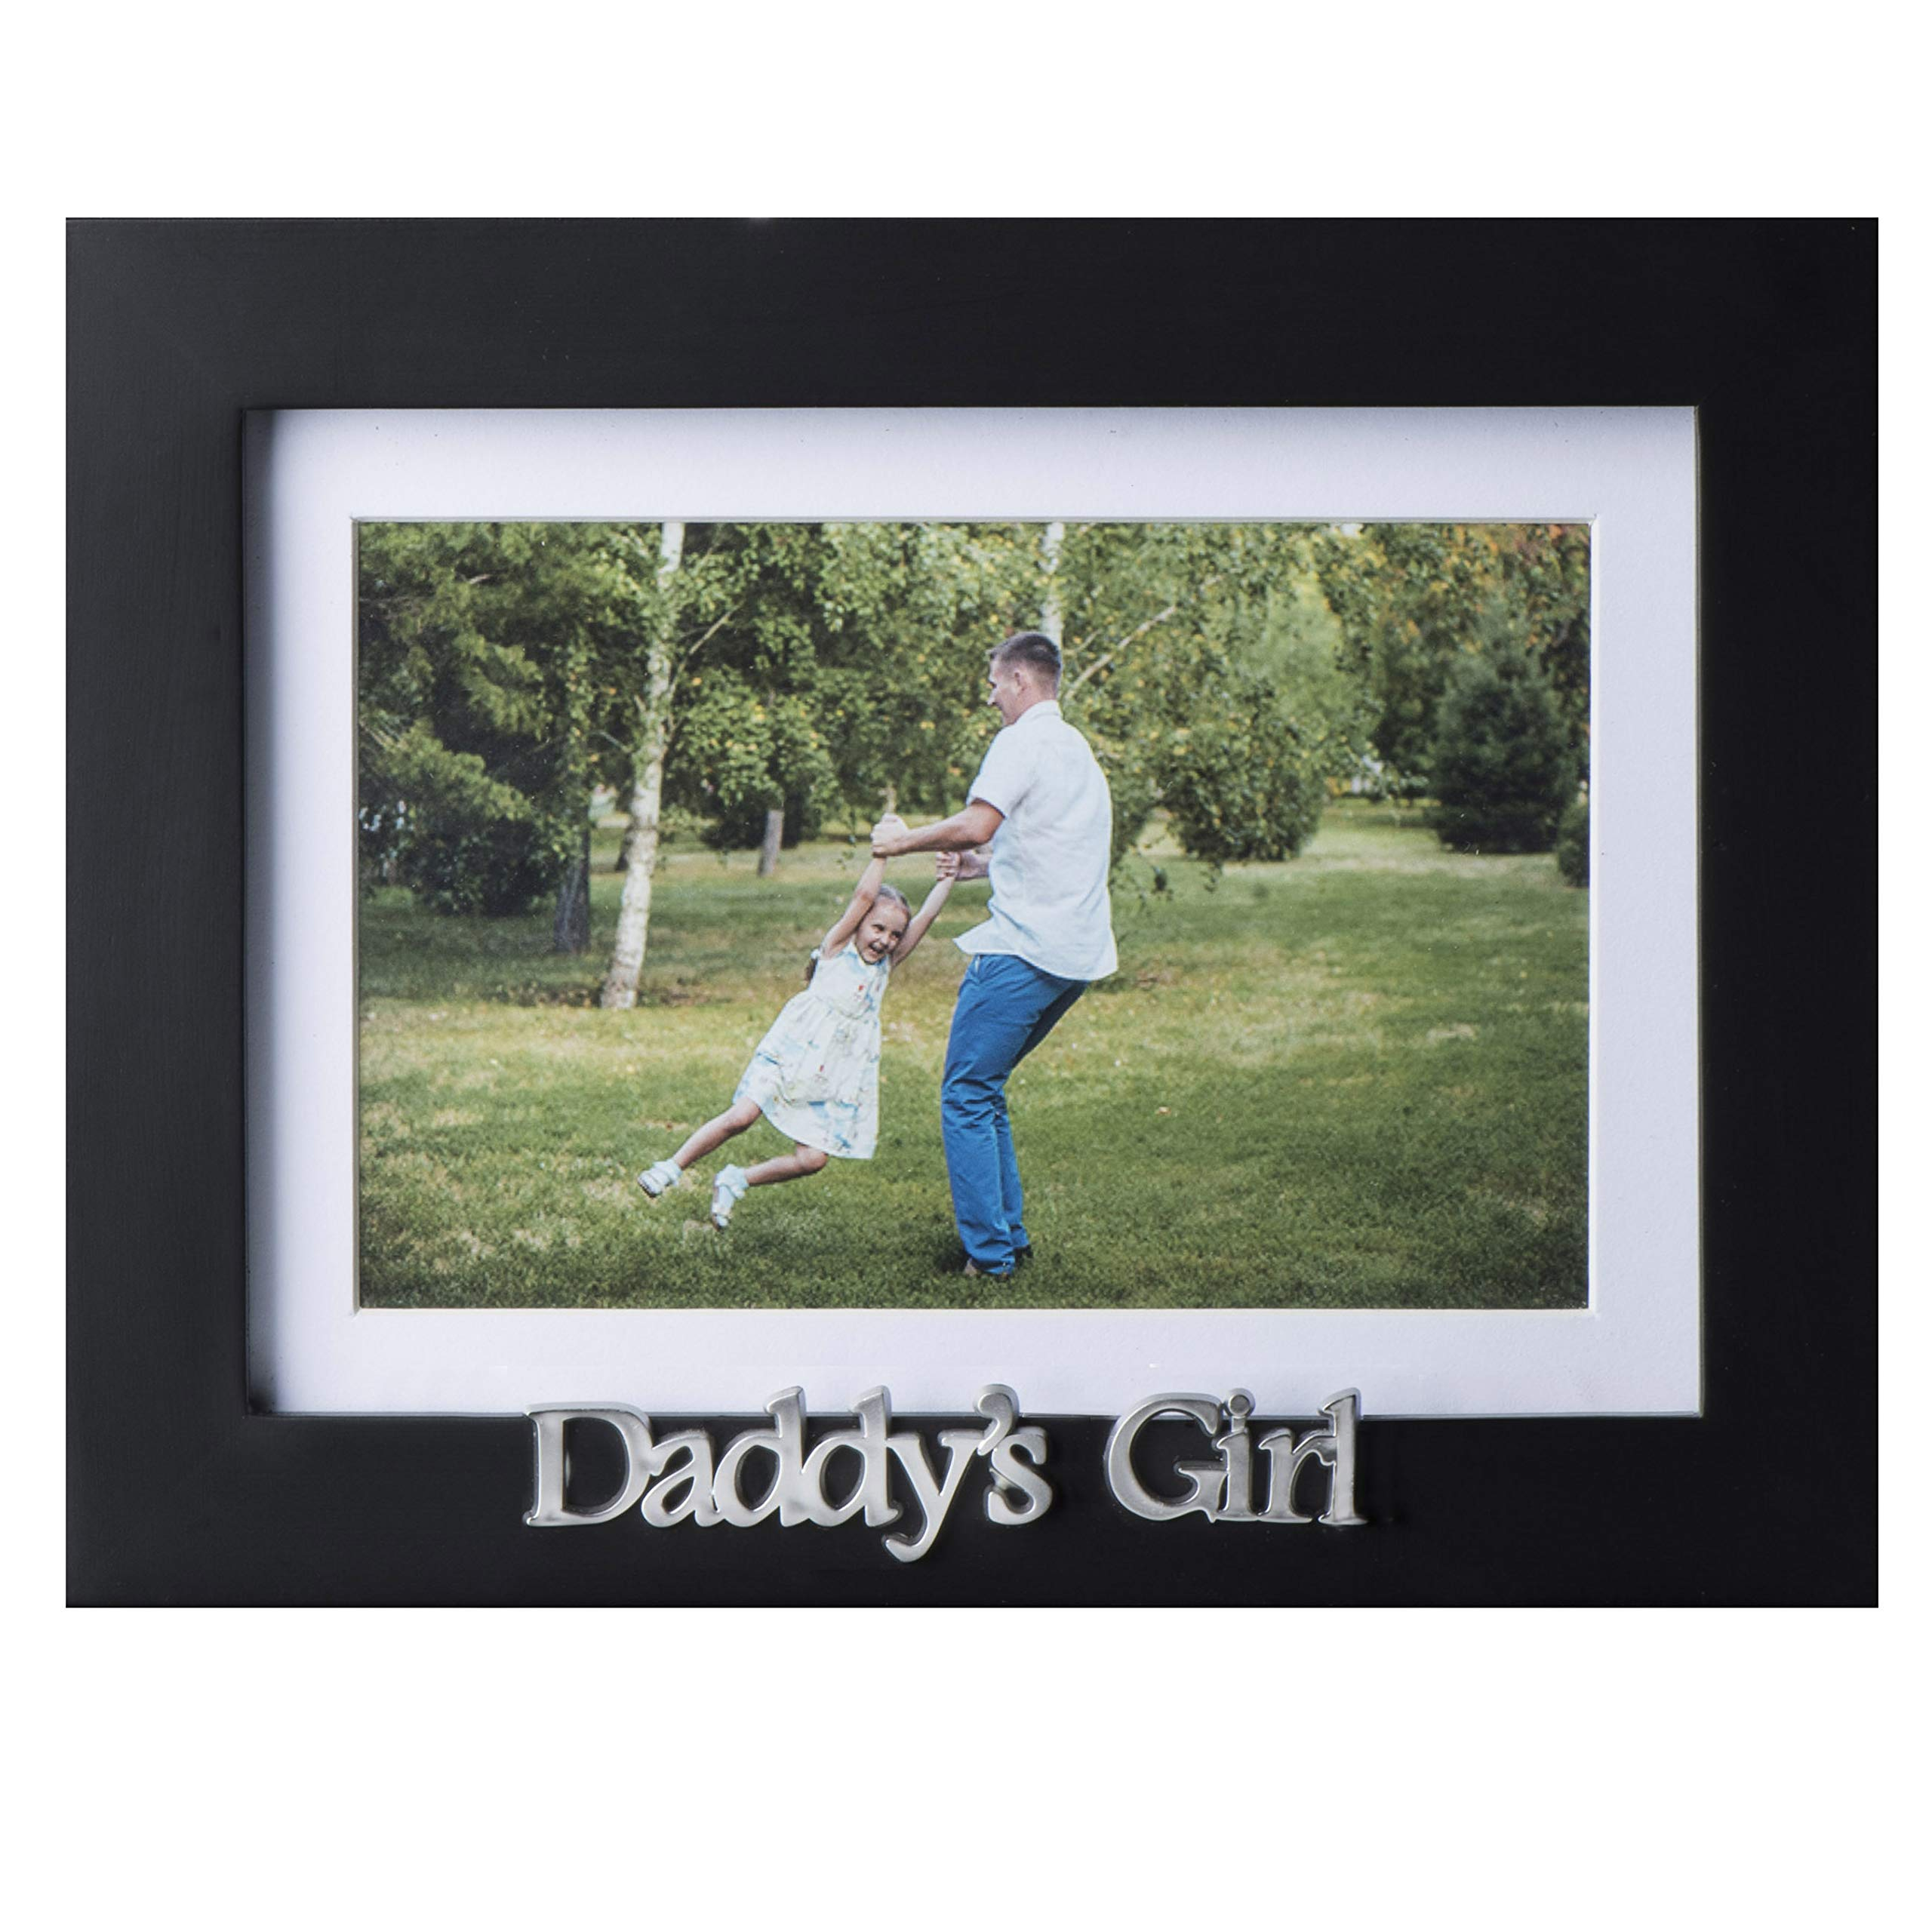 Klikel Daddys Girl Picture Frame | Black Wood Frame with Father Sentiments | Holds 1 4x6 Photo with Mat or 1 5x7 Photo Without Mat | Wall Mount and Table Desk Display by Klikel